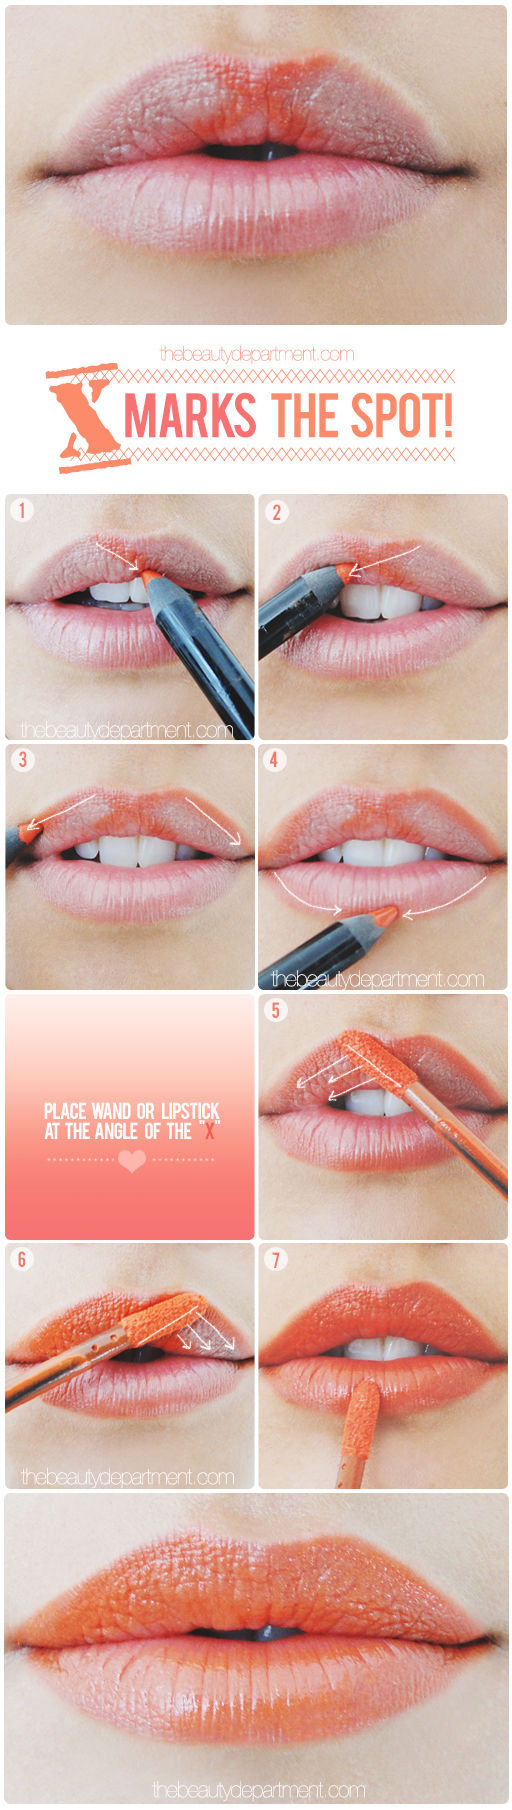 "6. If you're not into lip liner, master your lipstick application by drawing an ""X"" in the center of your top lip.  A defined Cupid's bow can quickly make lips look fuller."